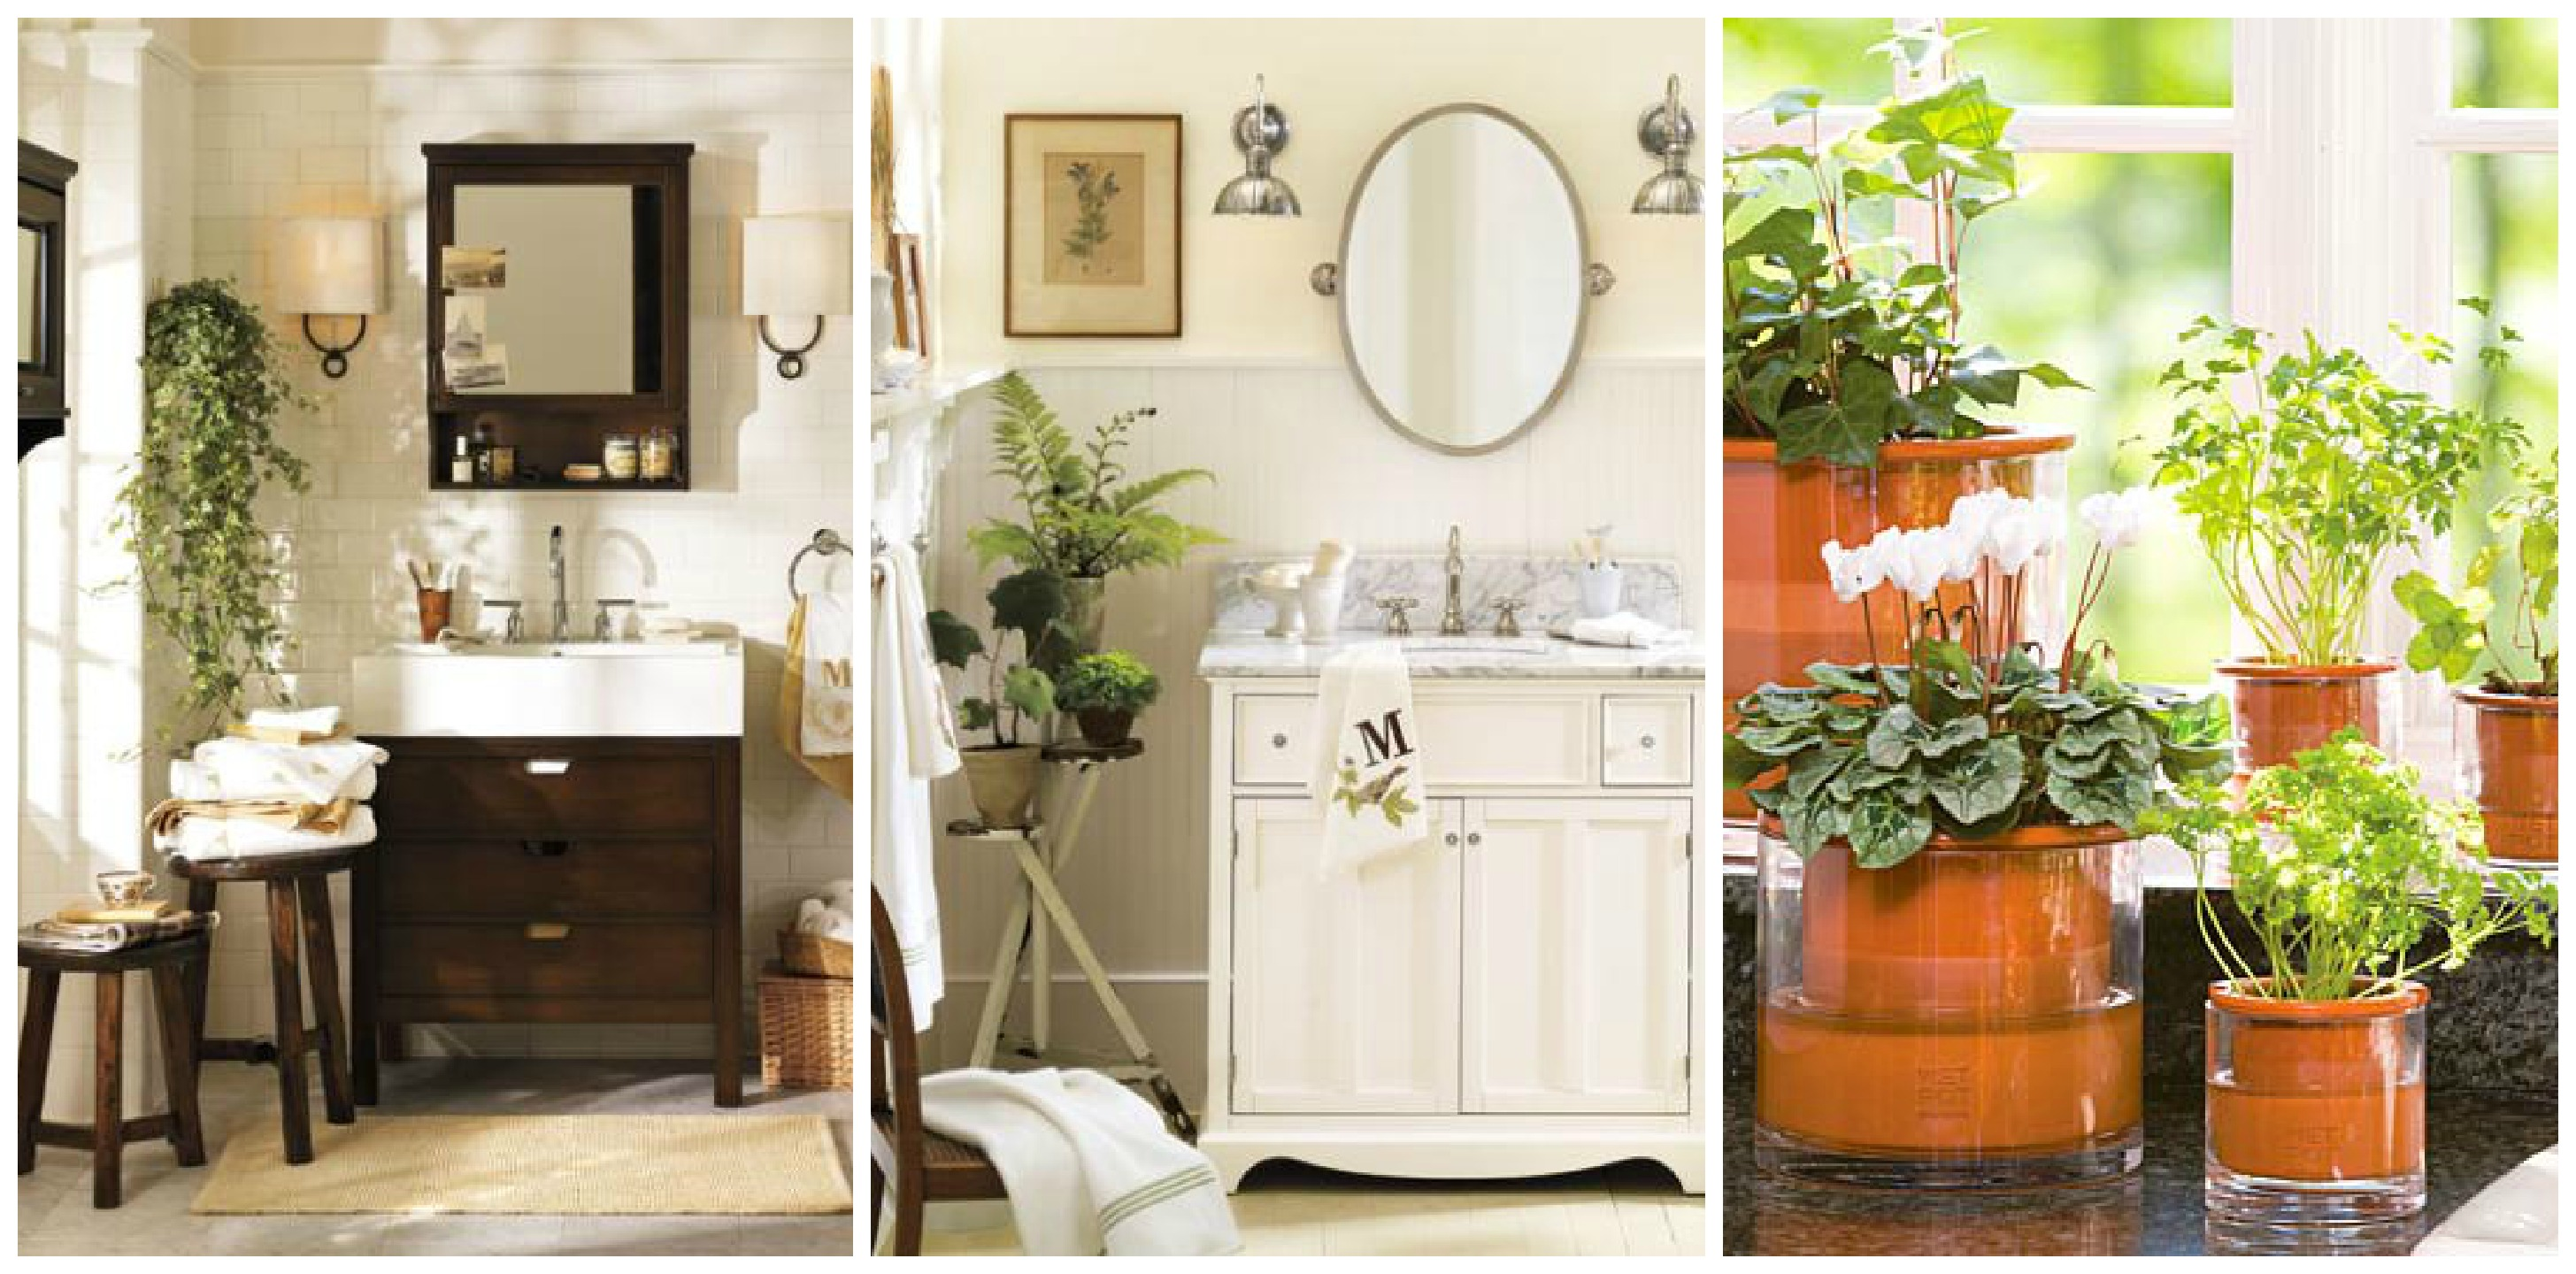 5 Simple Yet Creative Bathroom Decor Ideas